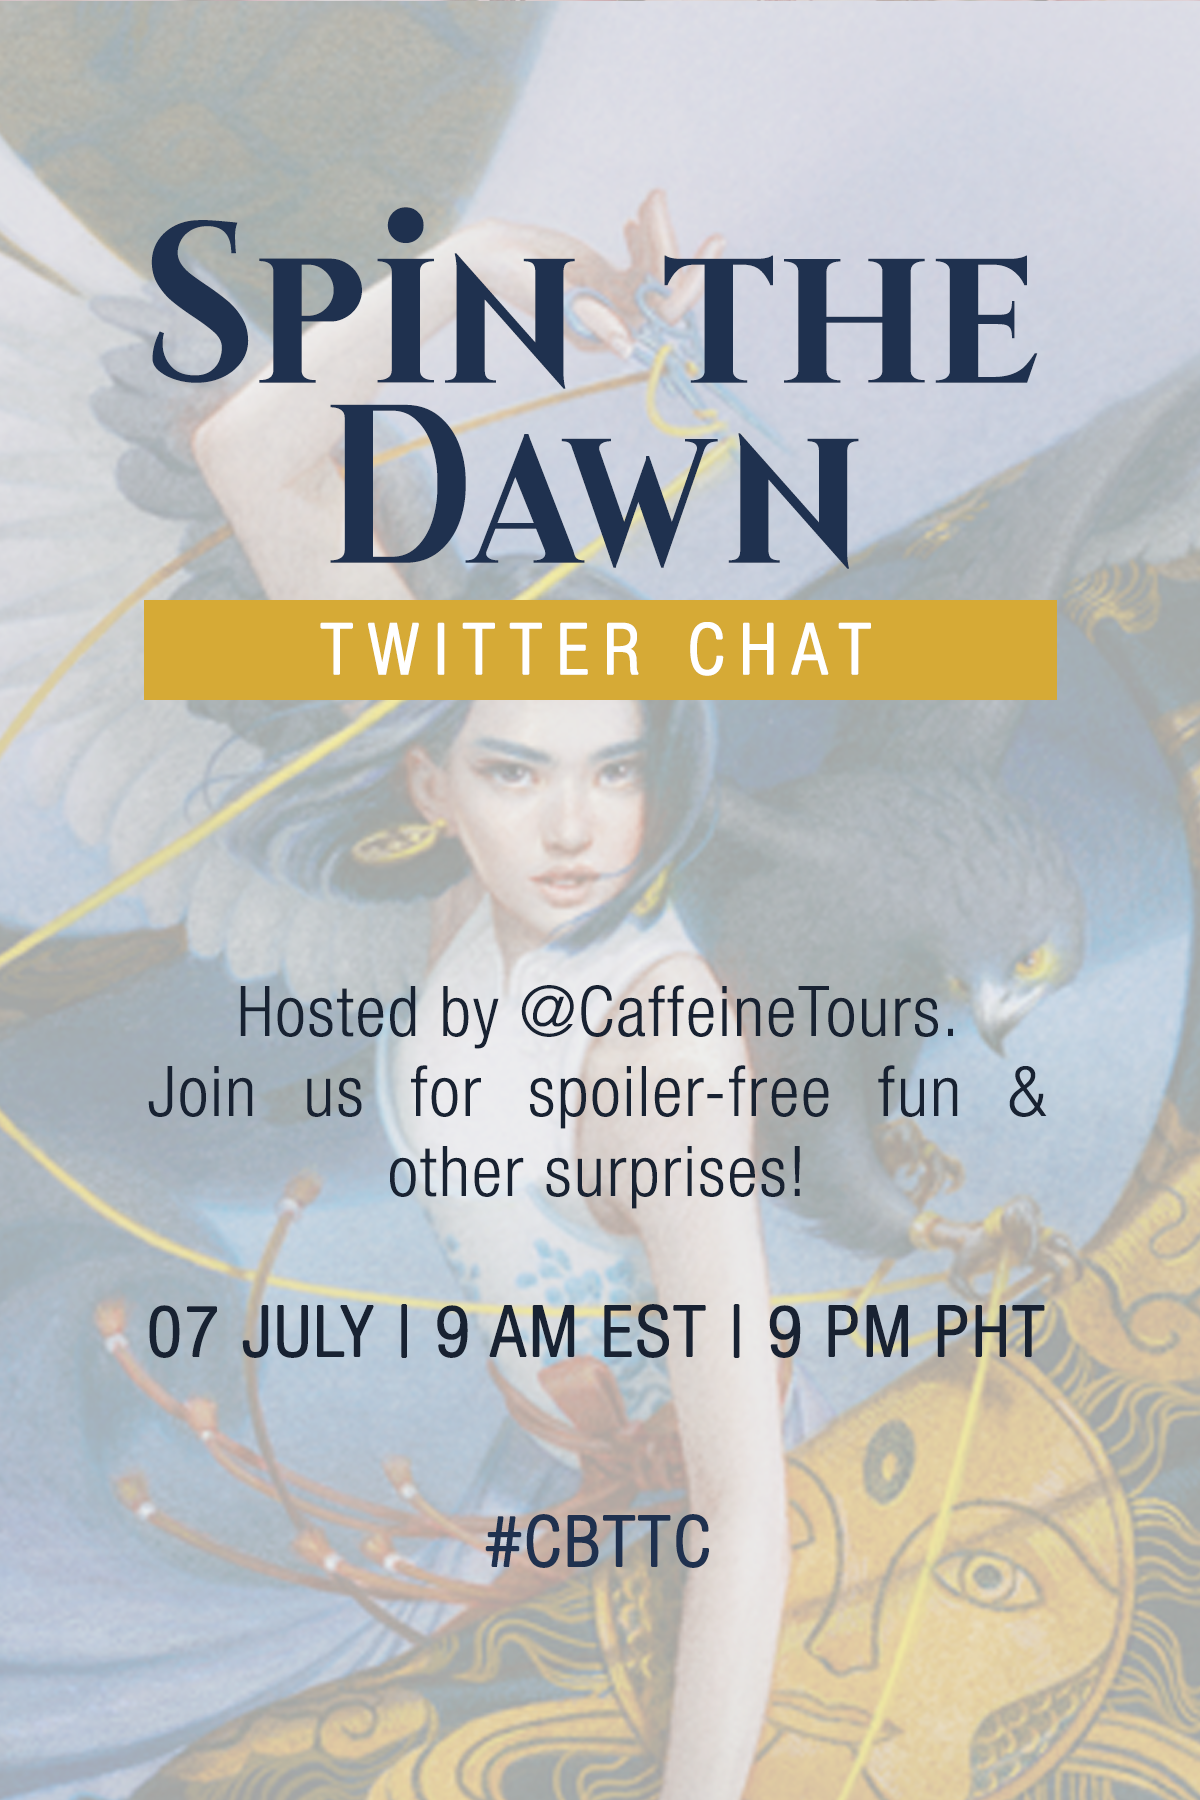 Twitter Chat Invite (Spin the Dawn)